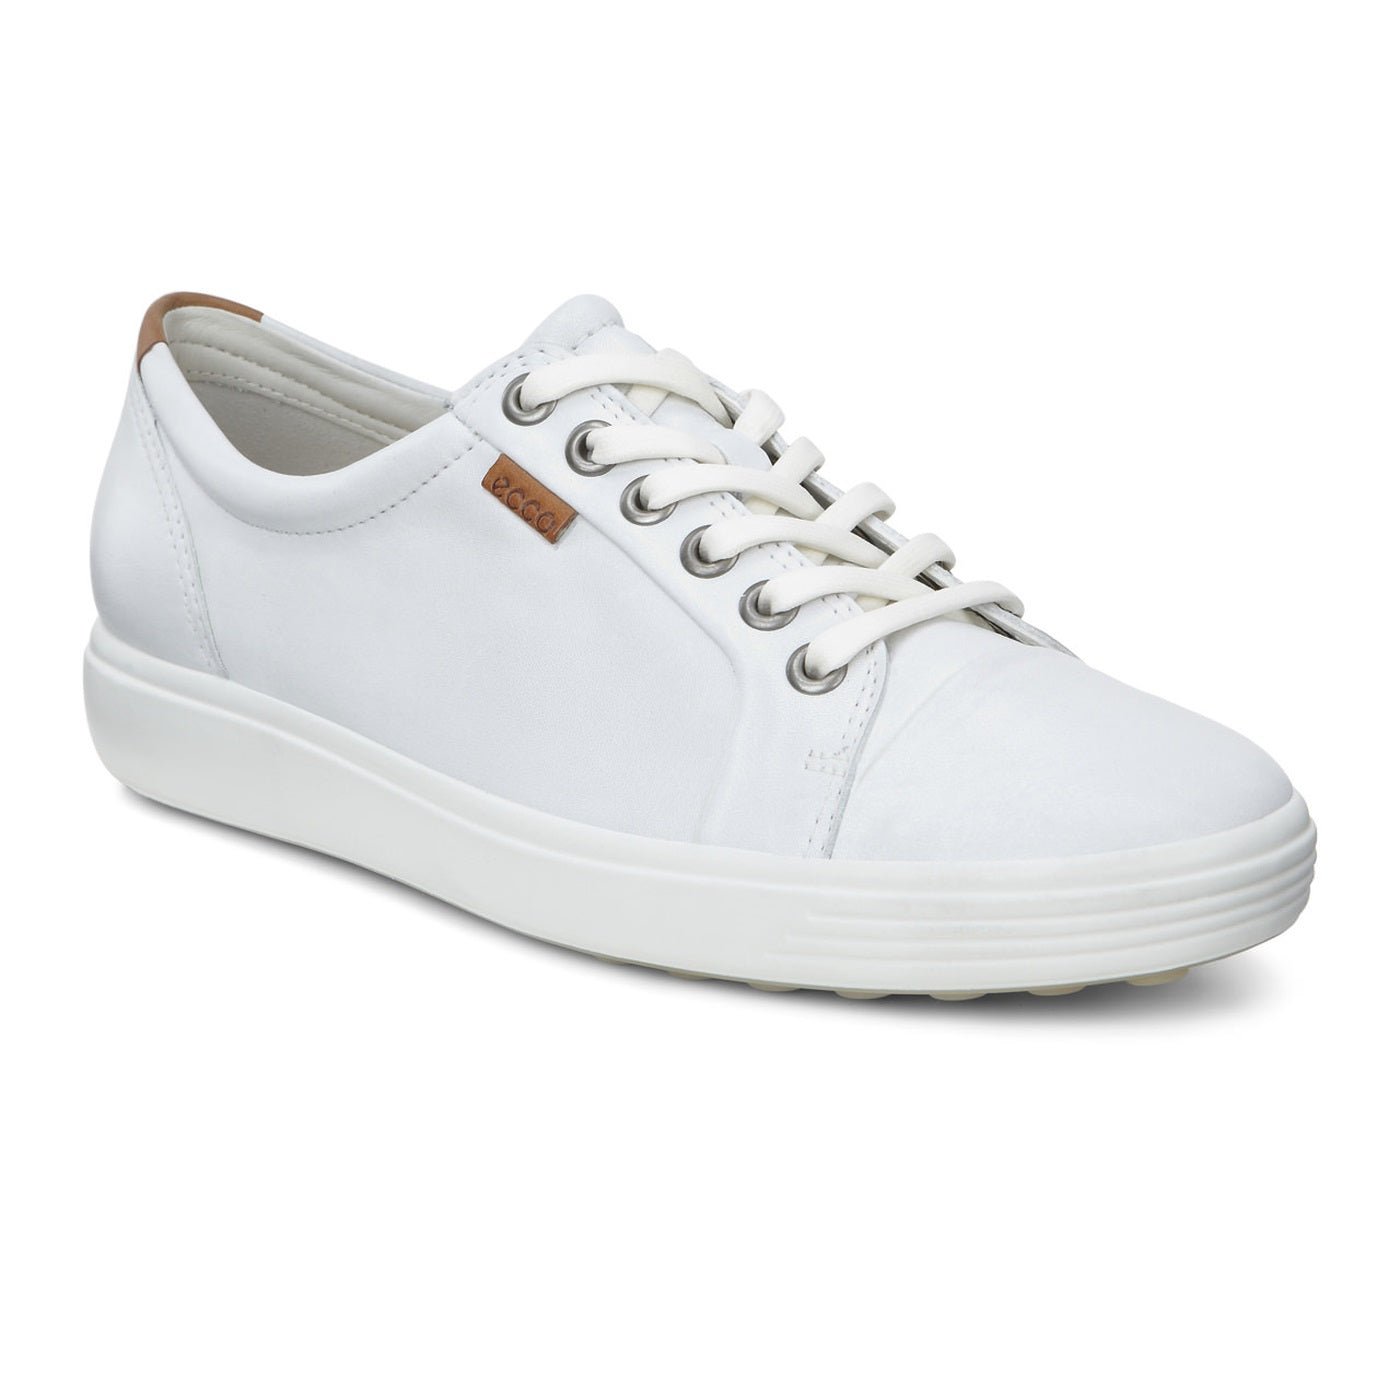 Women's Ecco Soft 7 Sneaker - White